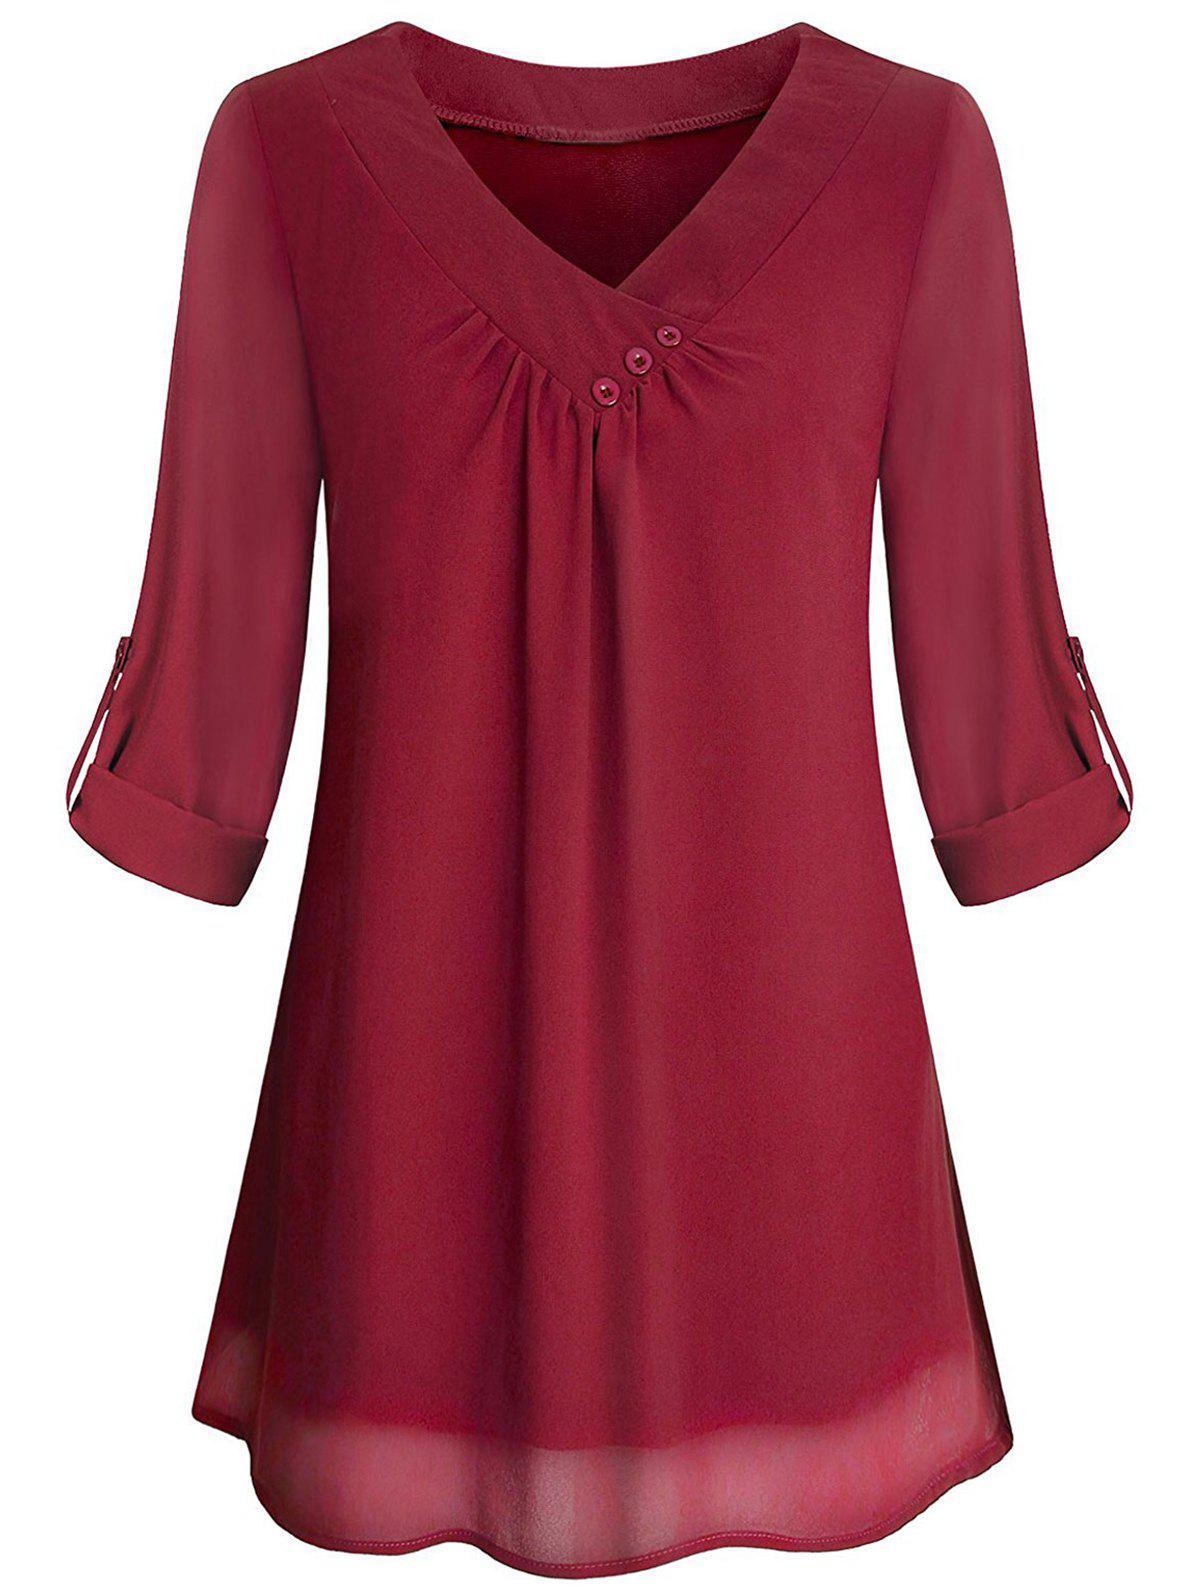 2979eb1c 48% OFF] Cuffed Sleeves Buttons V Neck Blouse | Rosegal